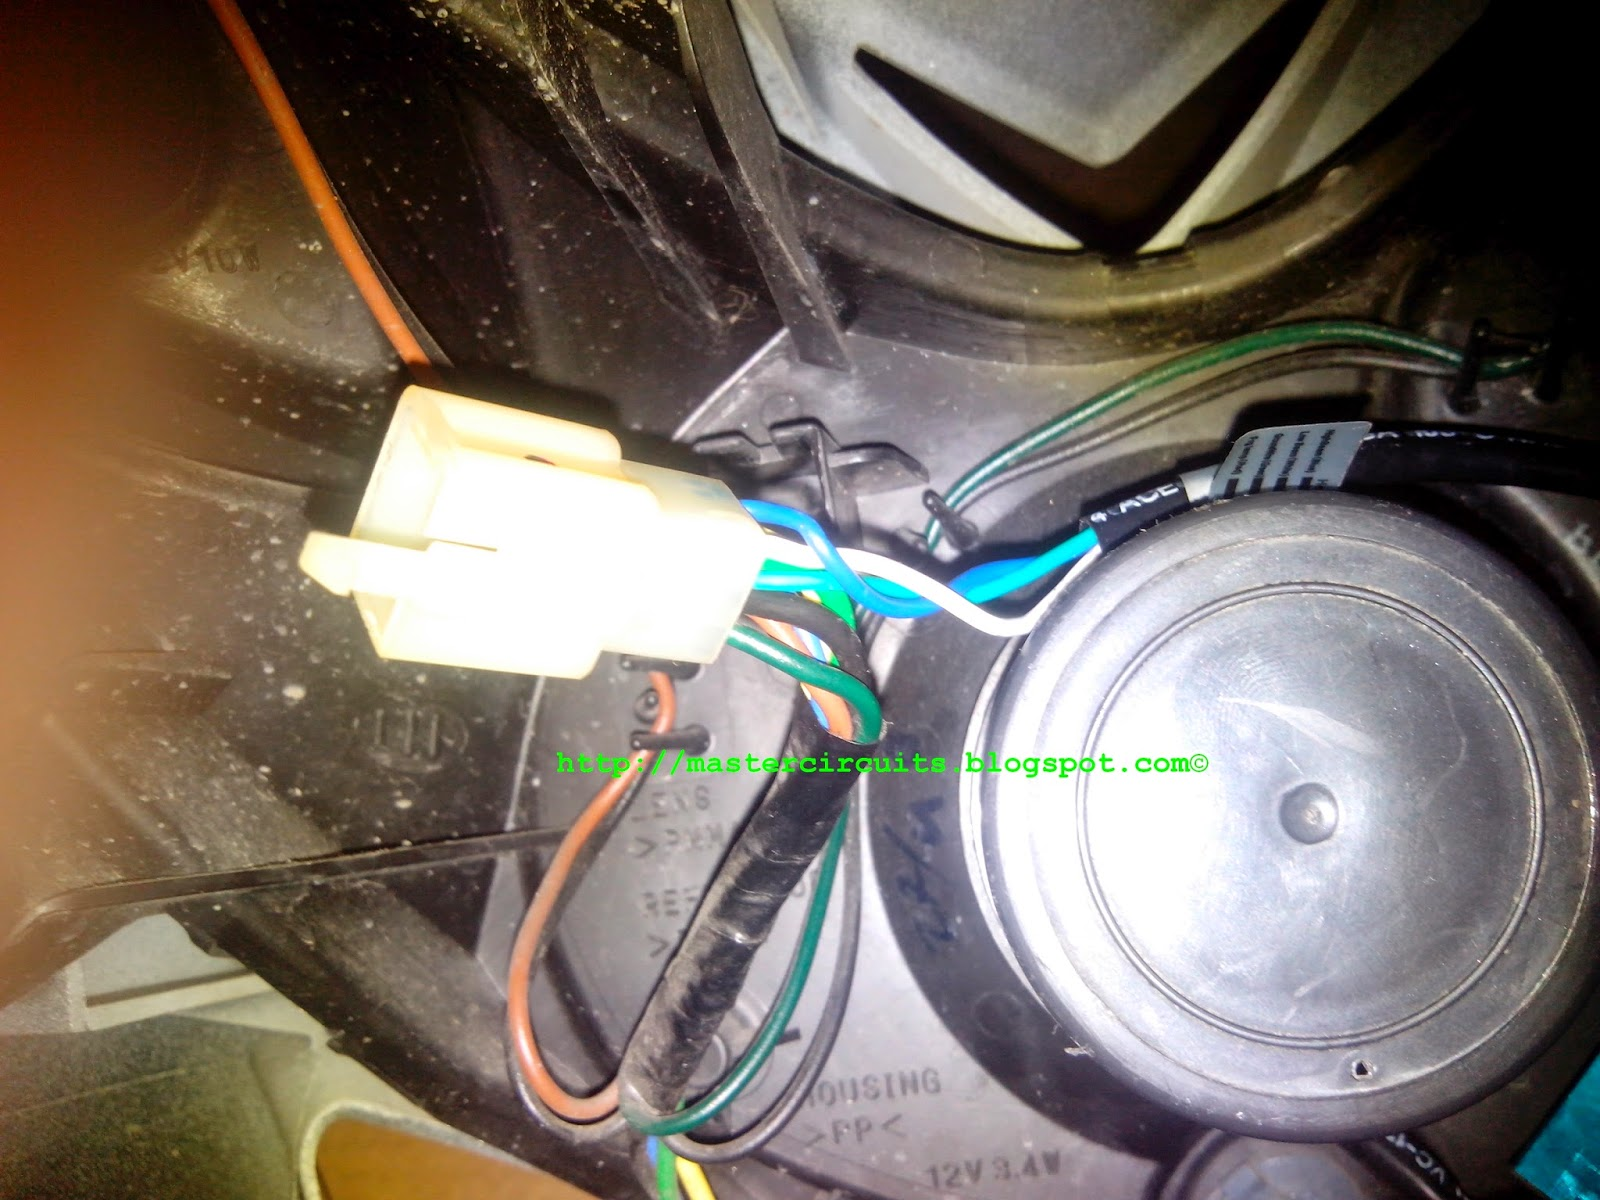 small resolution of  wires to preserve the original wiring in case problem arises with the led replacement and always ready for the refitting of the original bulb headlight